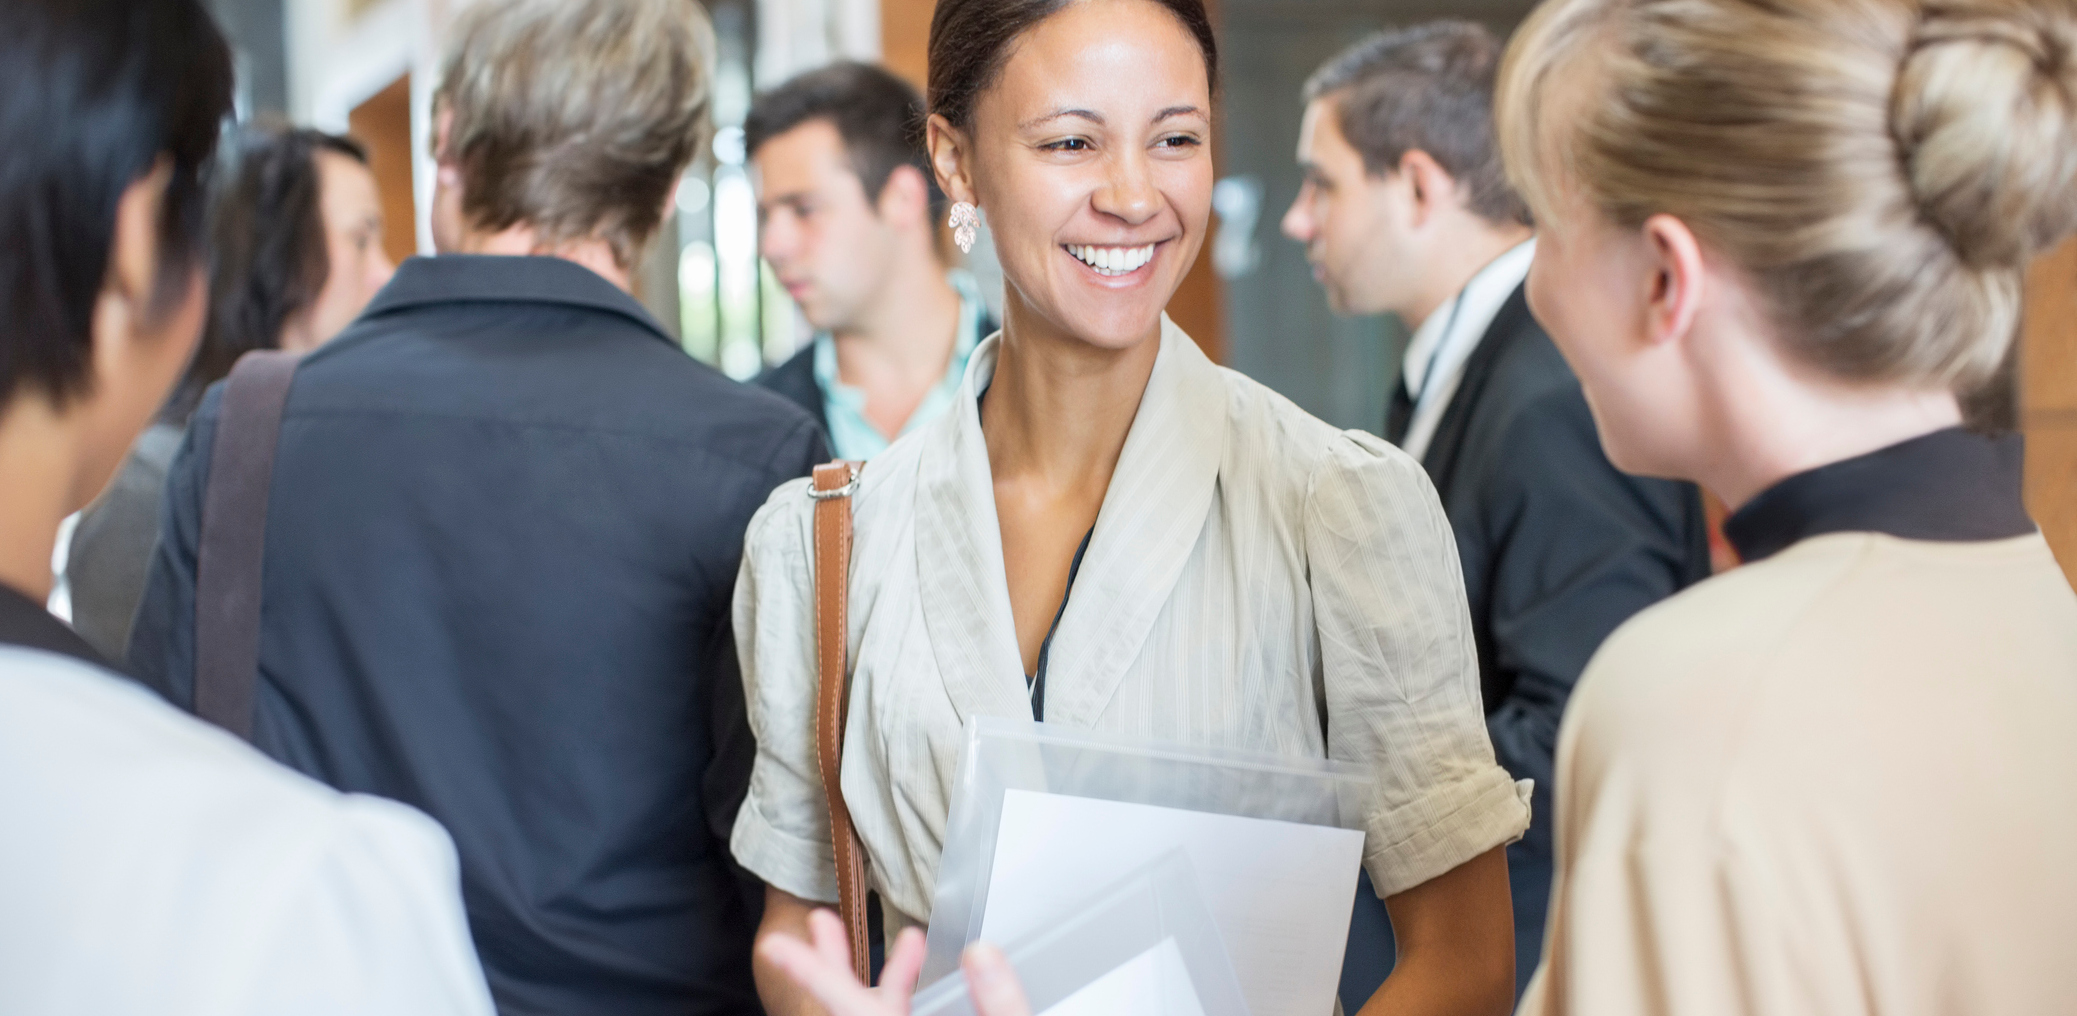 5 Networking Conversation Starters and Topics - The Muse